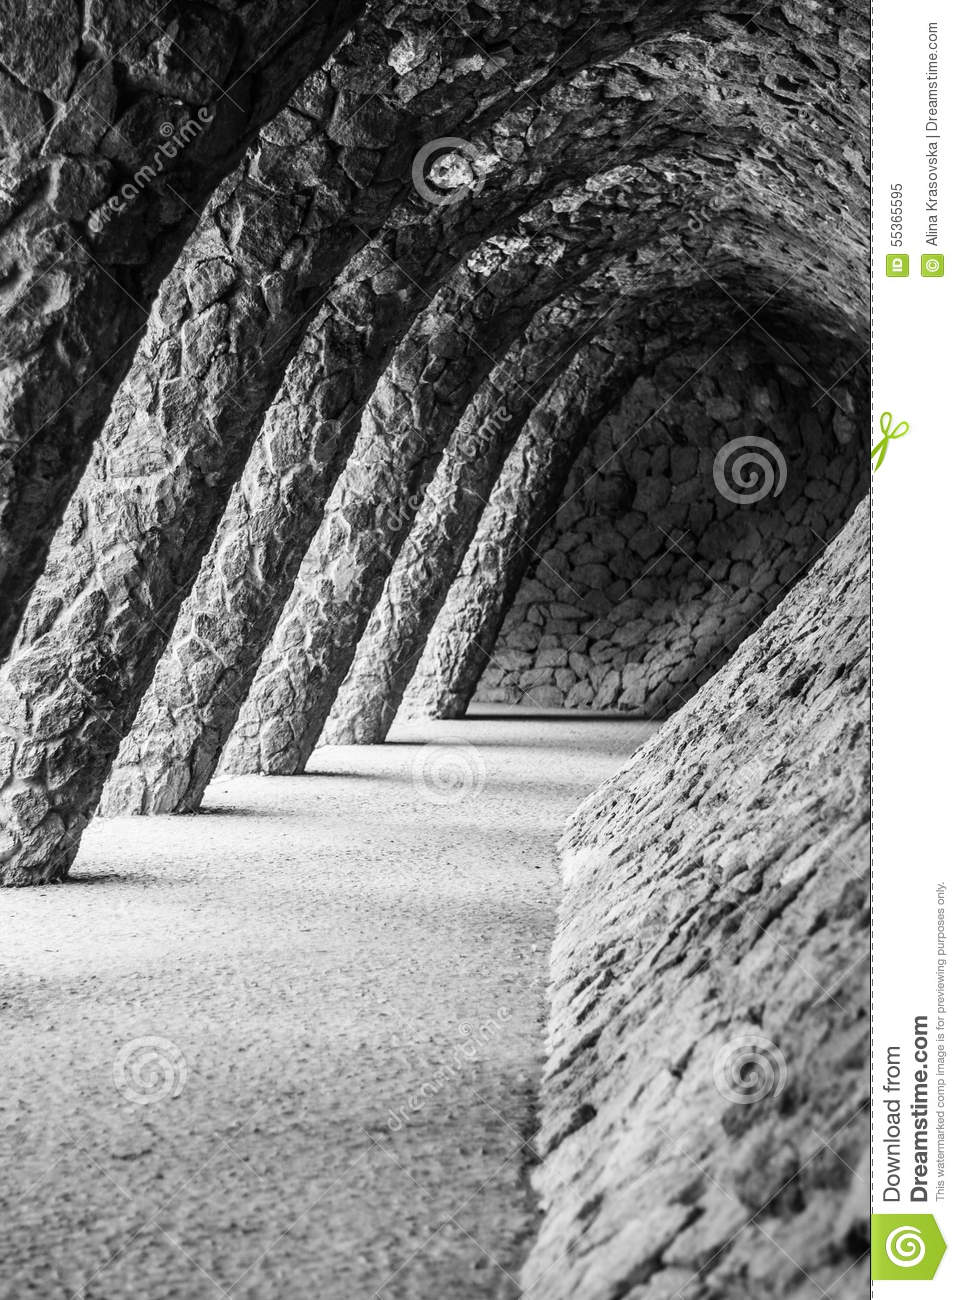 Parco di Guell